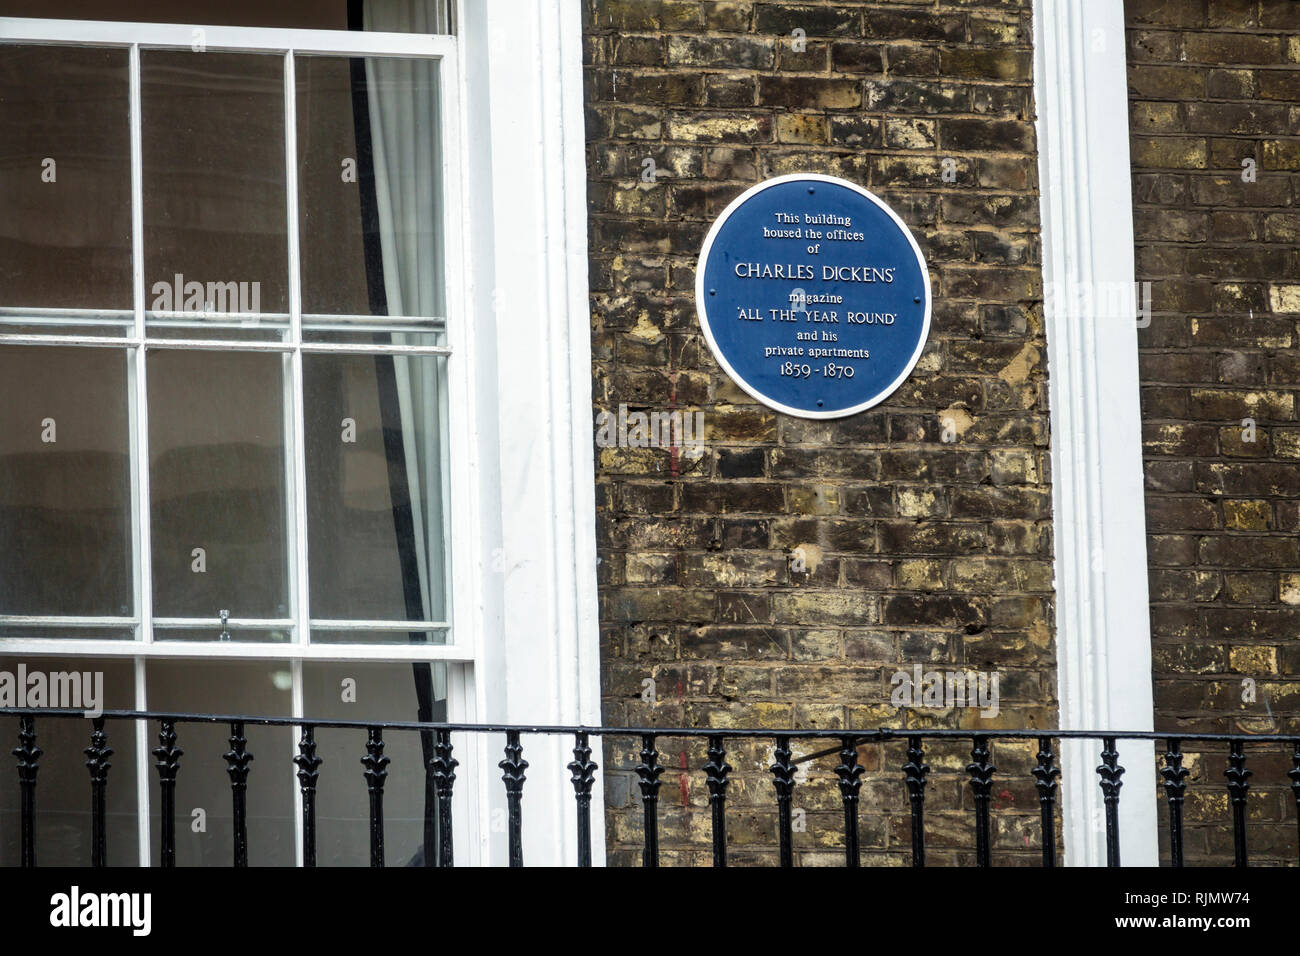 London England United Kingdom Great Britain Westminster Wellington Street Blue Plaque historical marker Charles Dickens All the Year Round literary ma - Stock Image